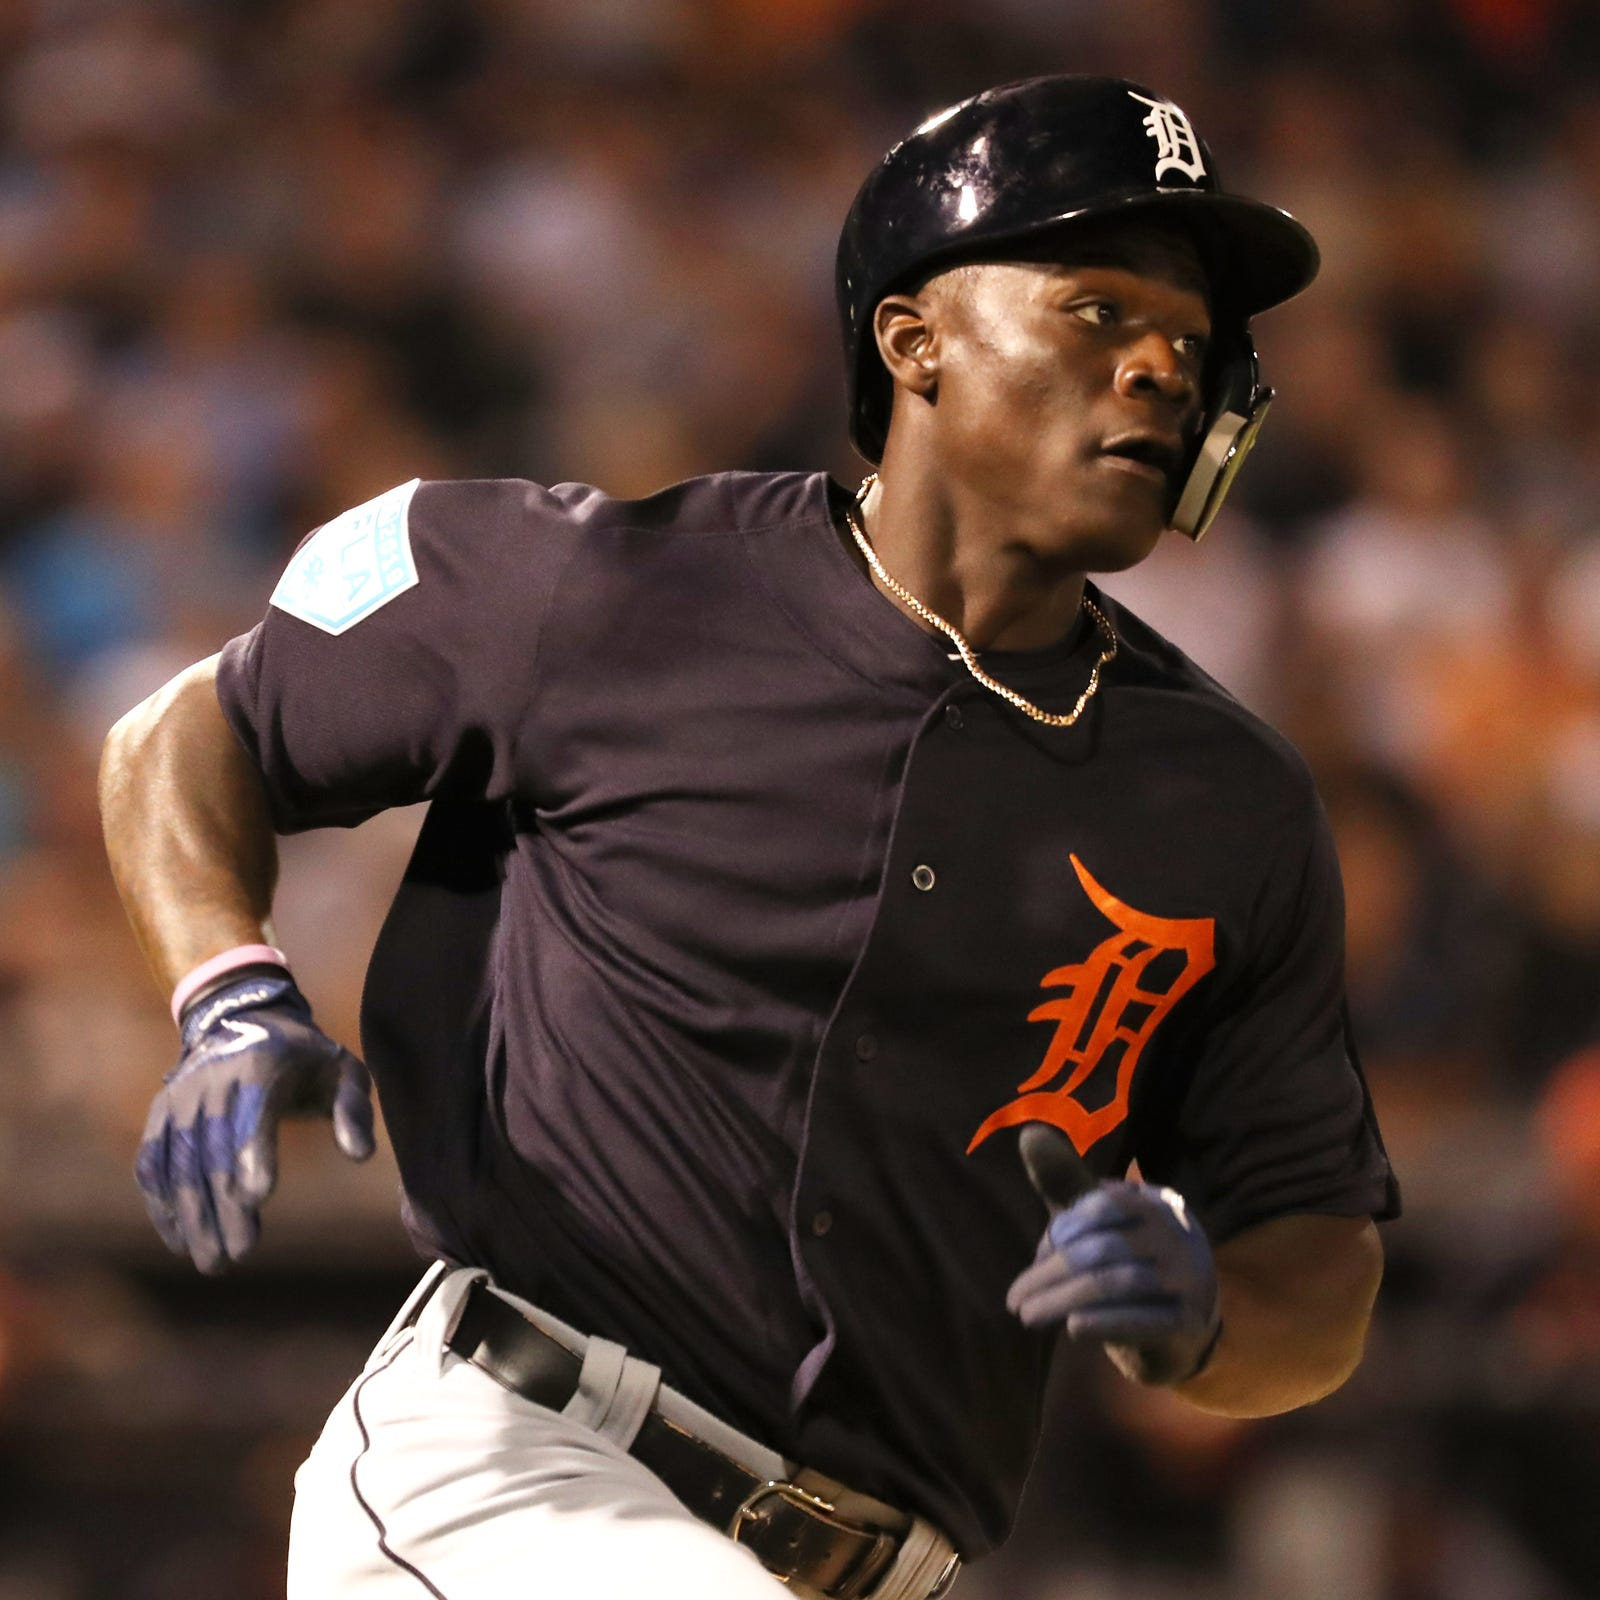 Detroit Tigers' prospects are struggling, a reminder that rebuilds are hard